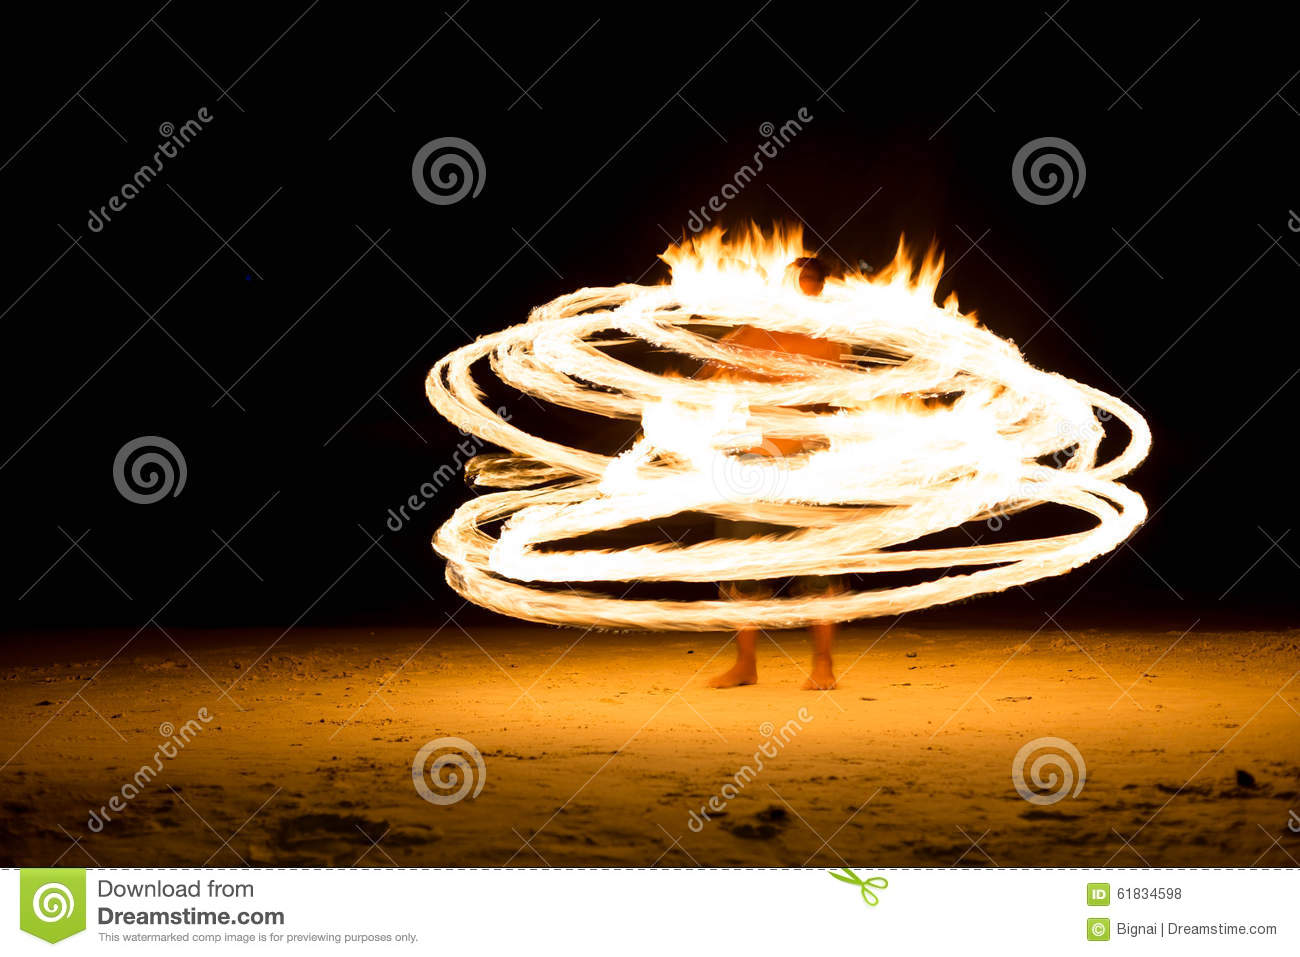 Man doing Fire show on beach party